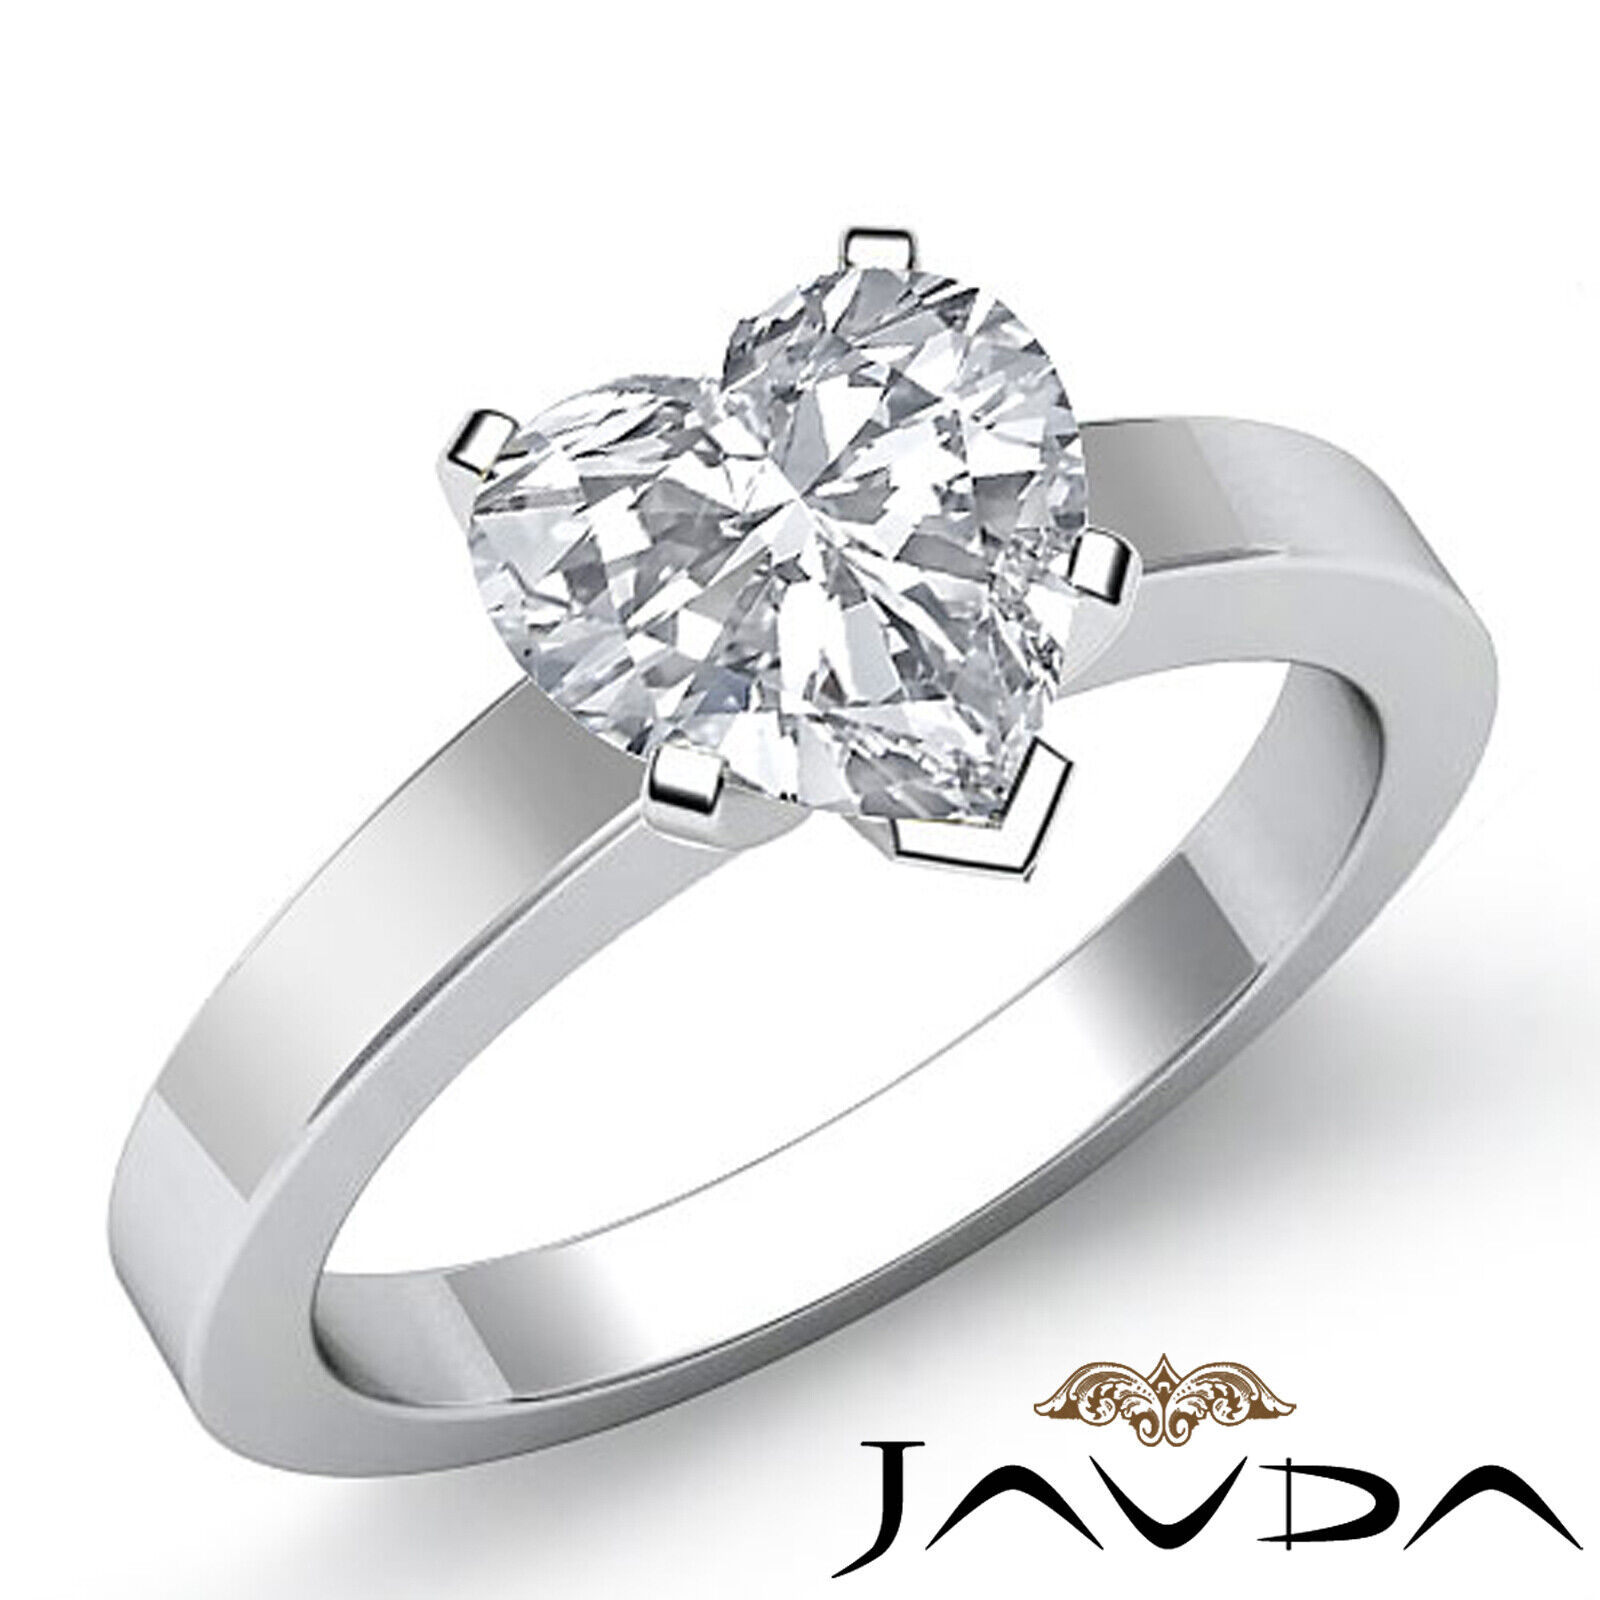 4 Prong Solitaire Heart Diamond Engagement GIA H  VS2 Gold Flat 3mm Ring 1.2 ct.